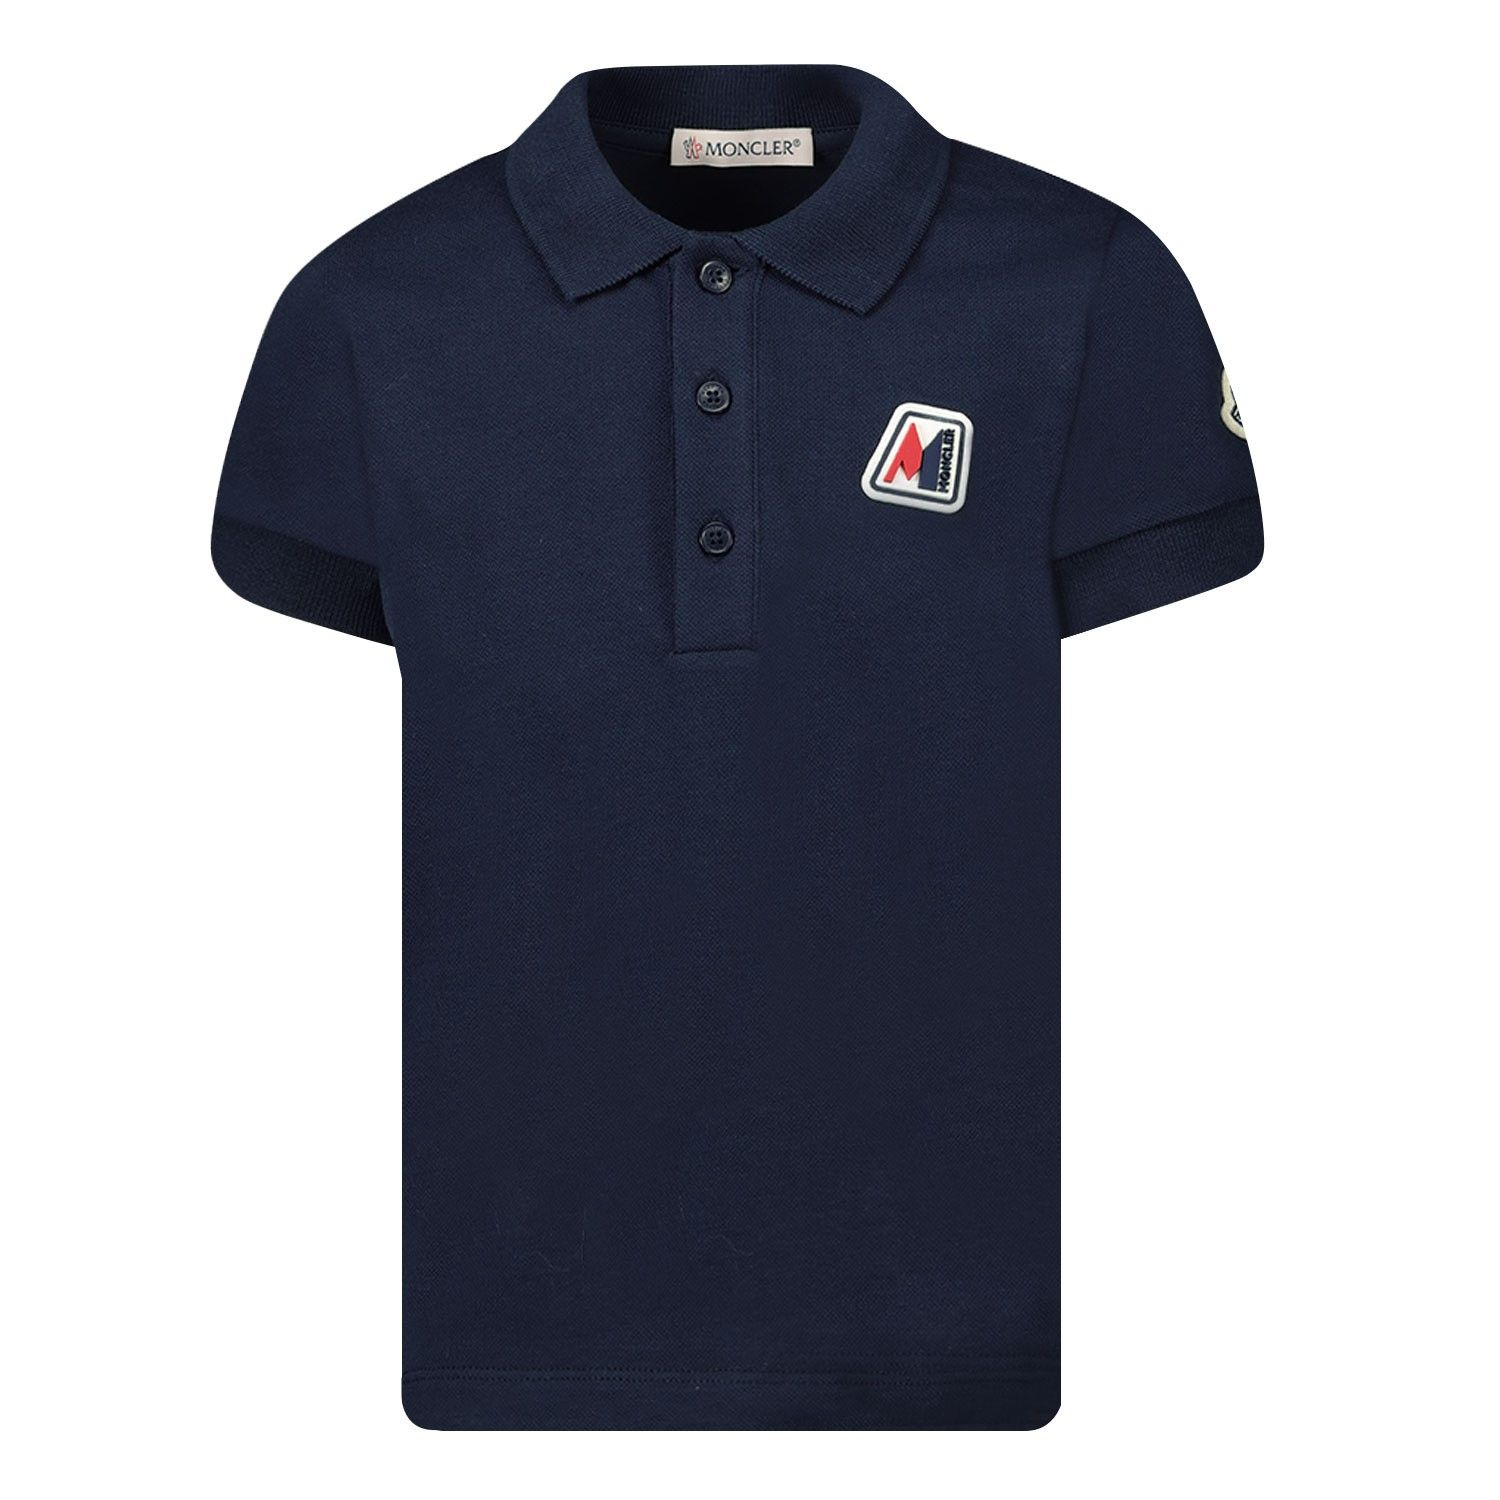 Afbeelding van Moncler 8A70220 baby polo donker blauw